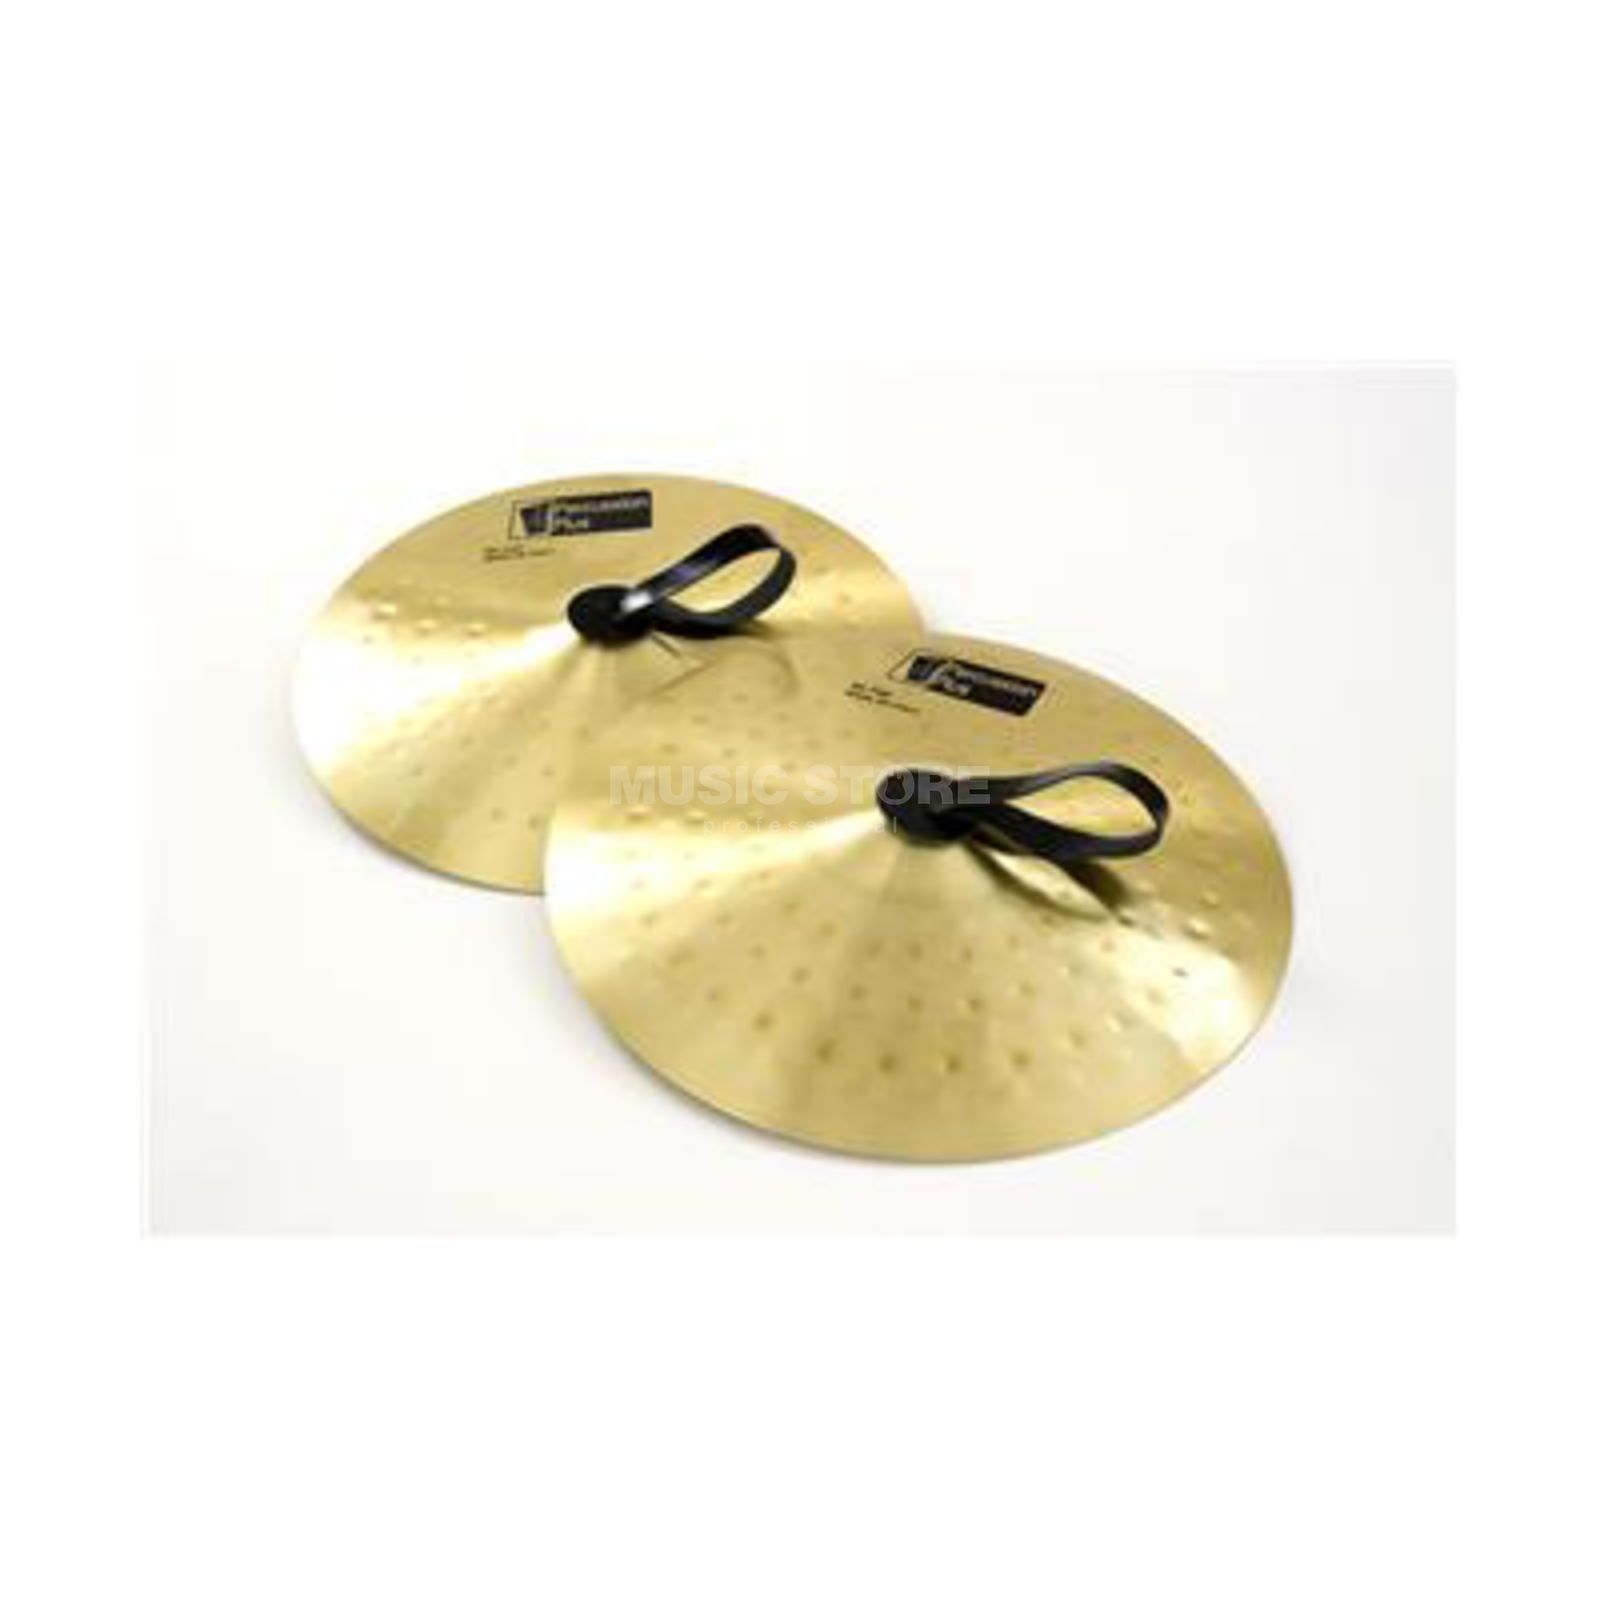 "Percussion Plus PP958 Cymbals 12"", Marching Pair, with straps Produktbillede"